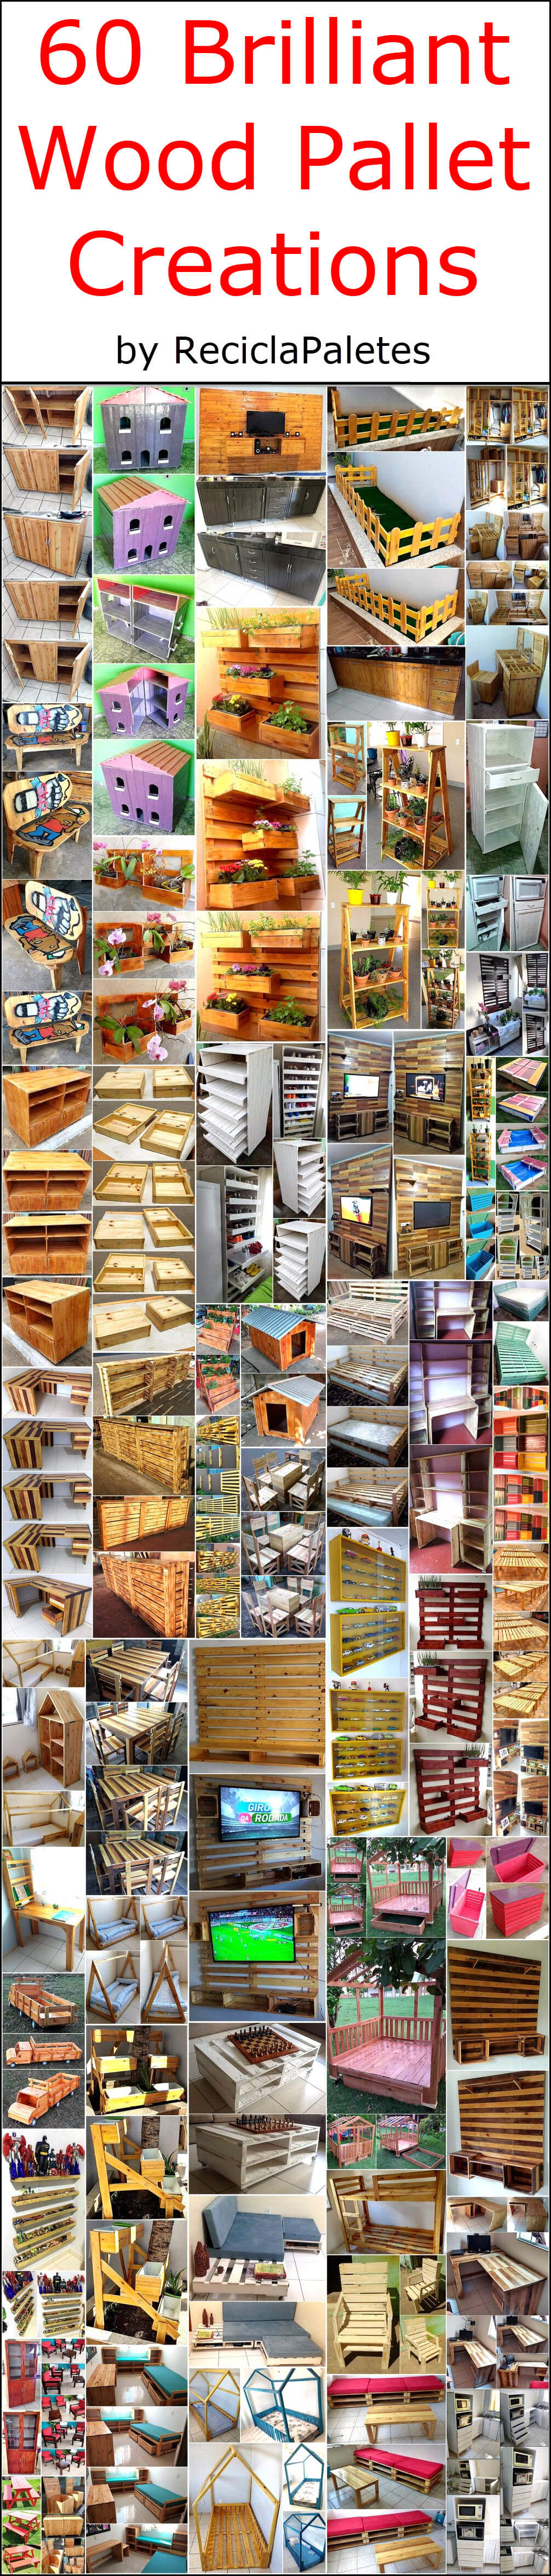 60 Brilliant Wood Pallet Creations by ReciclaPaletes